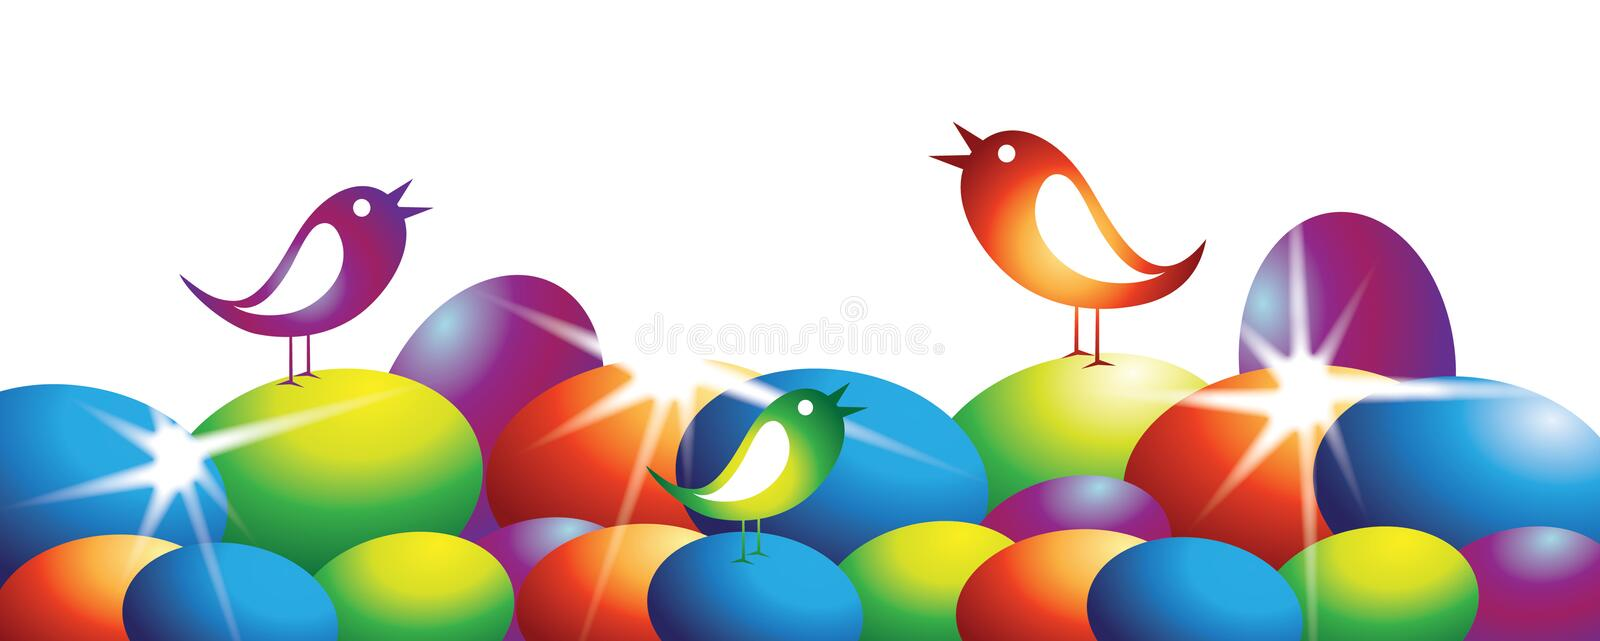 Download Easter Frieze Stock Photos - Image: 18839913